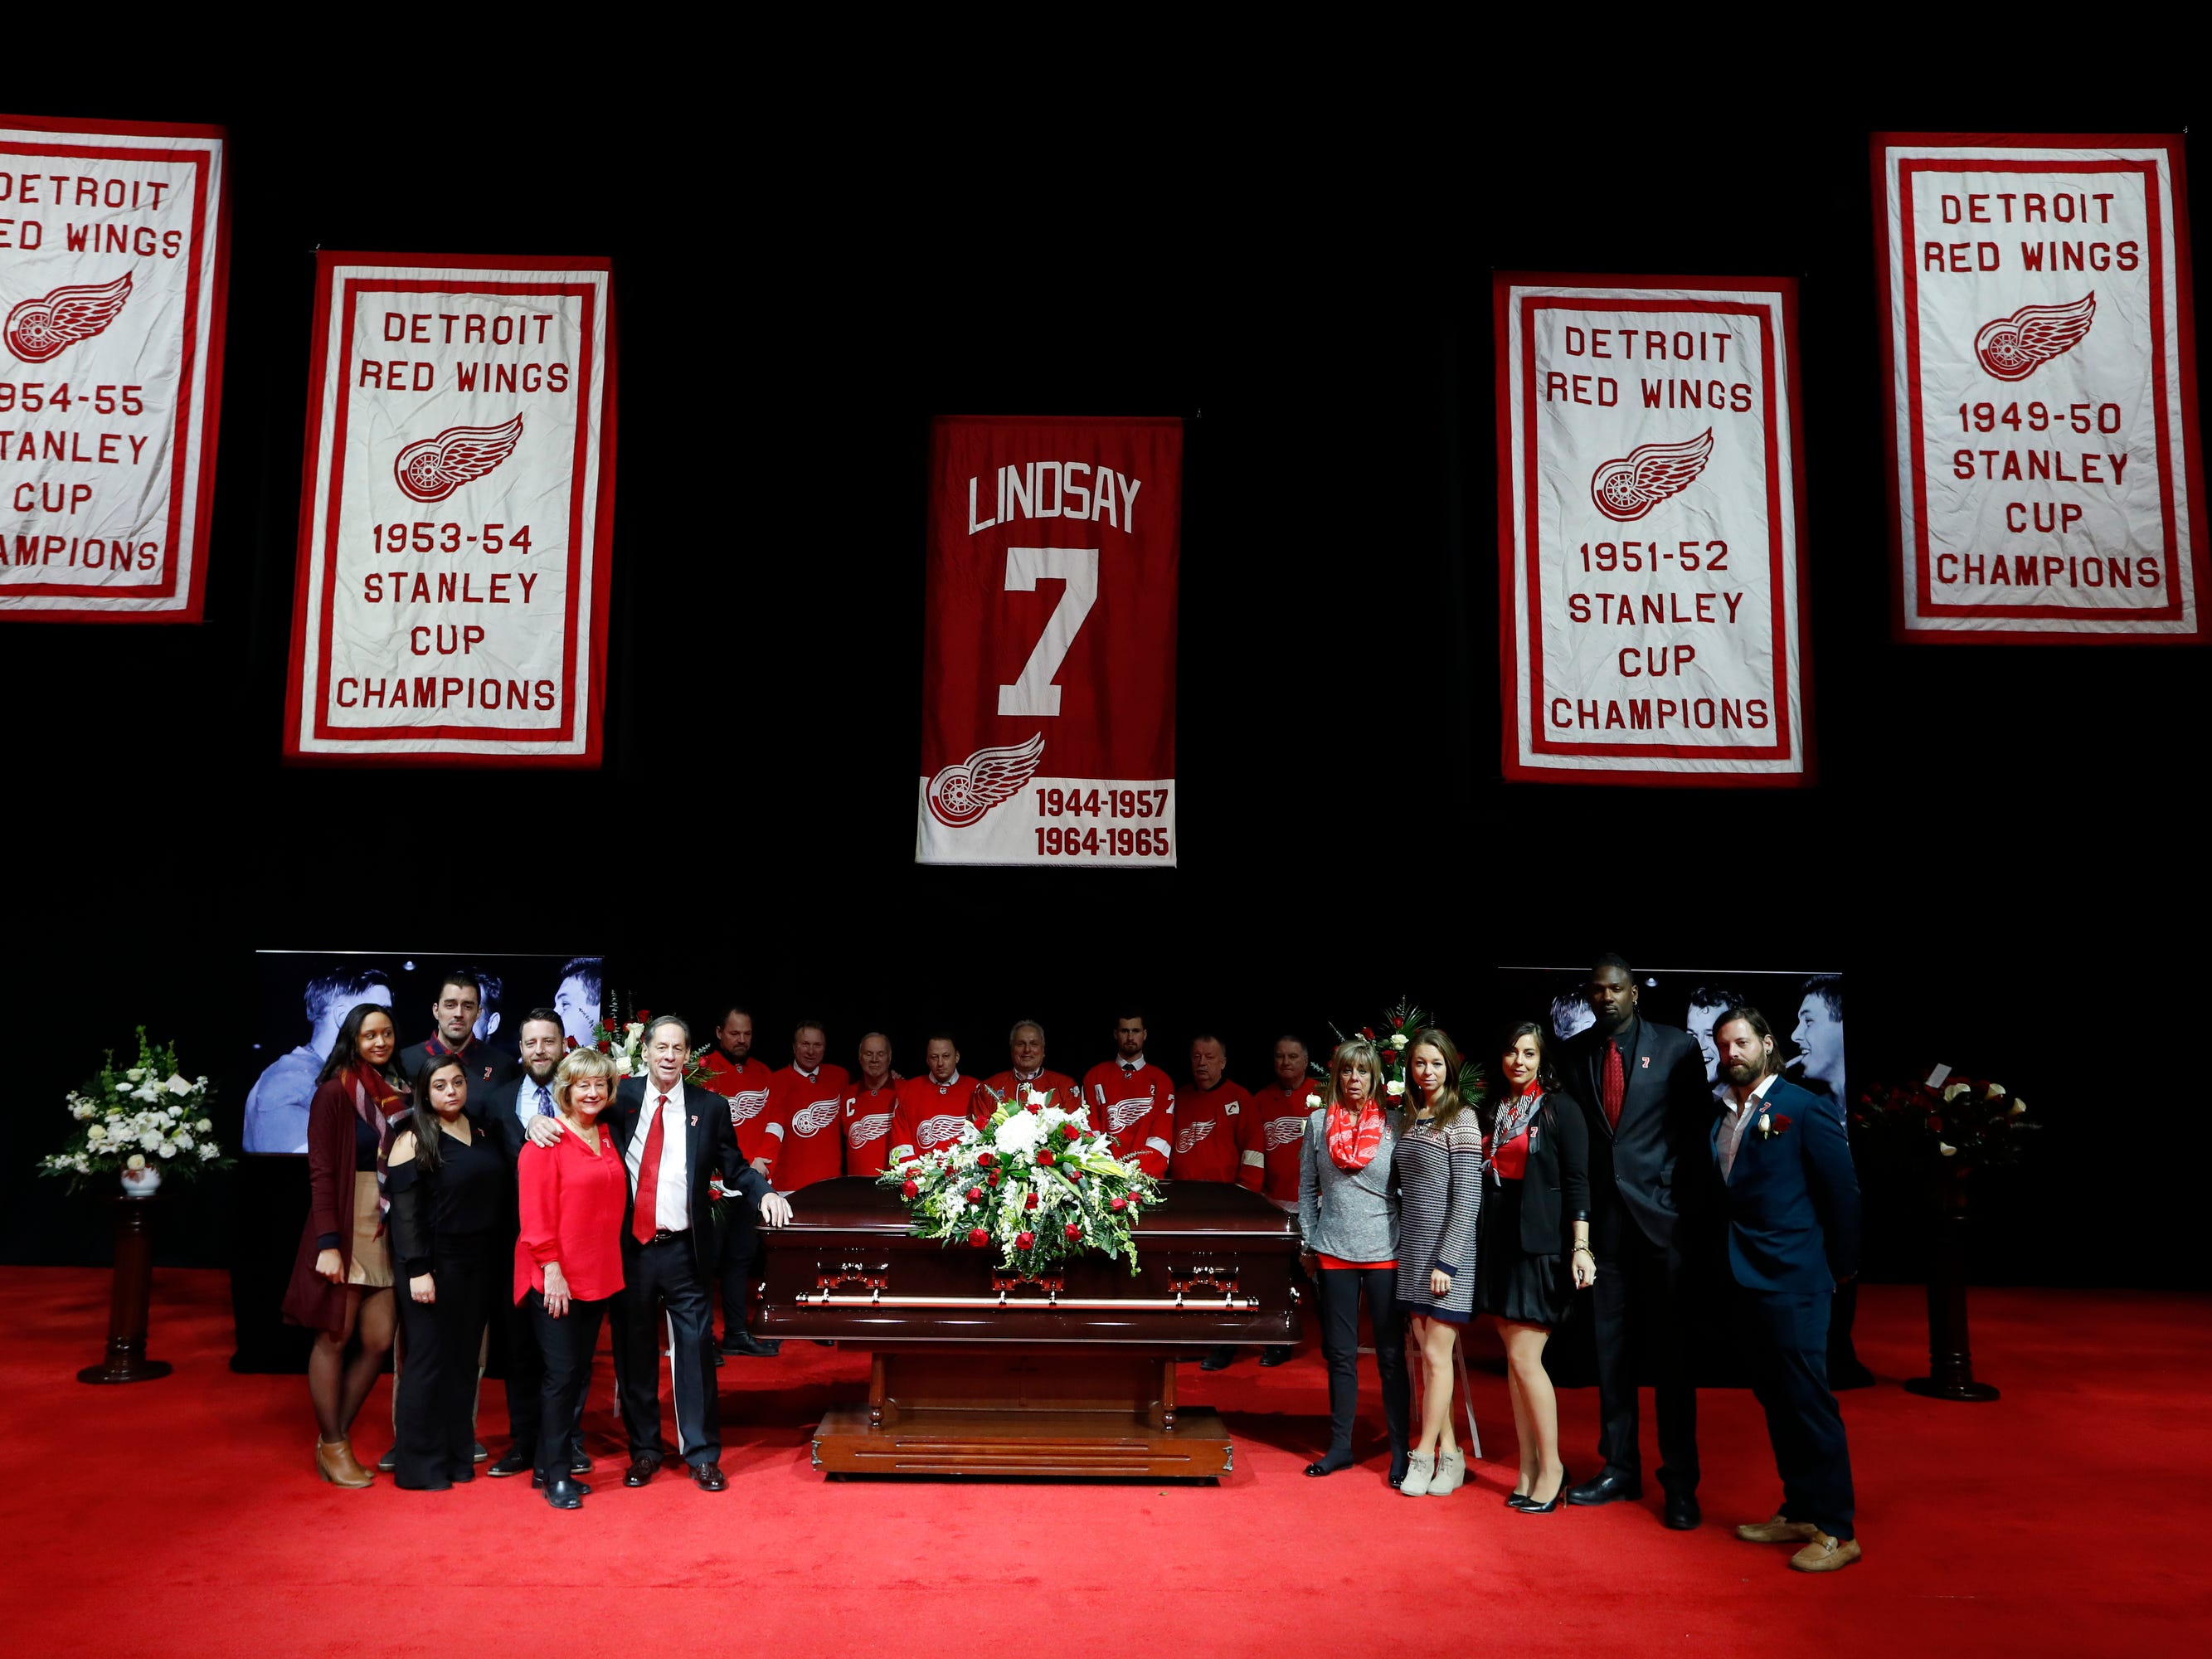 Family members pose with the casket of former Red Wing Ted Lindsay, with pallbearers behind it,  before the  public viewing. Lindsay's retired number hangs above.